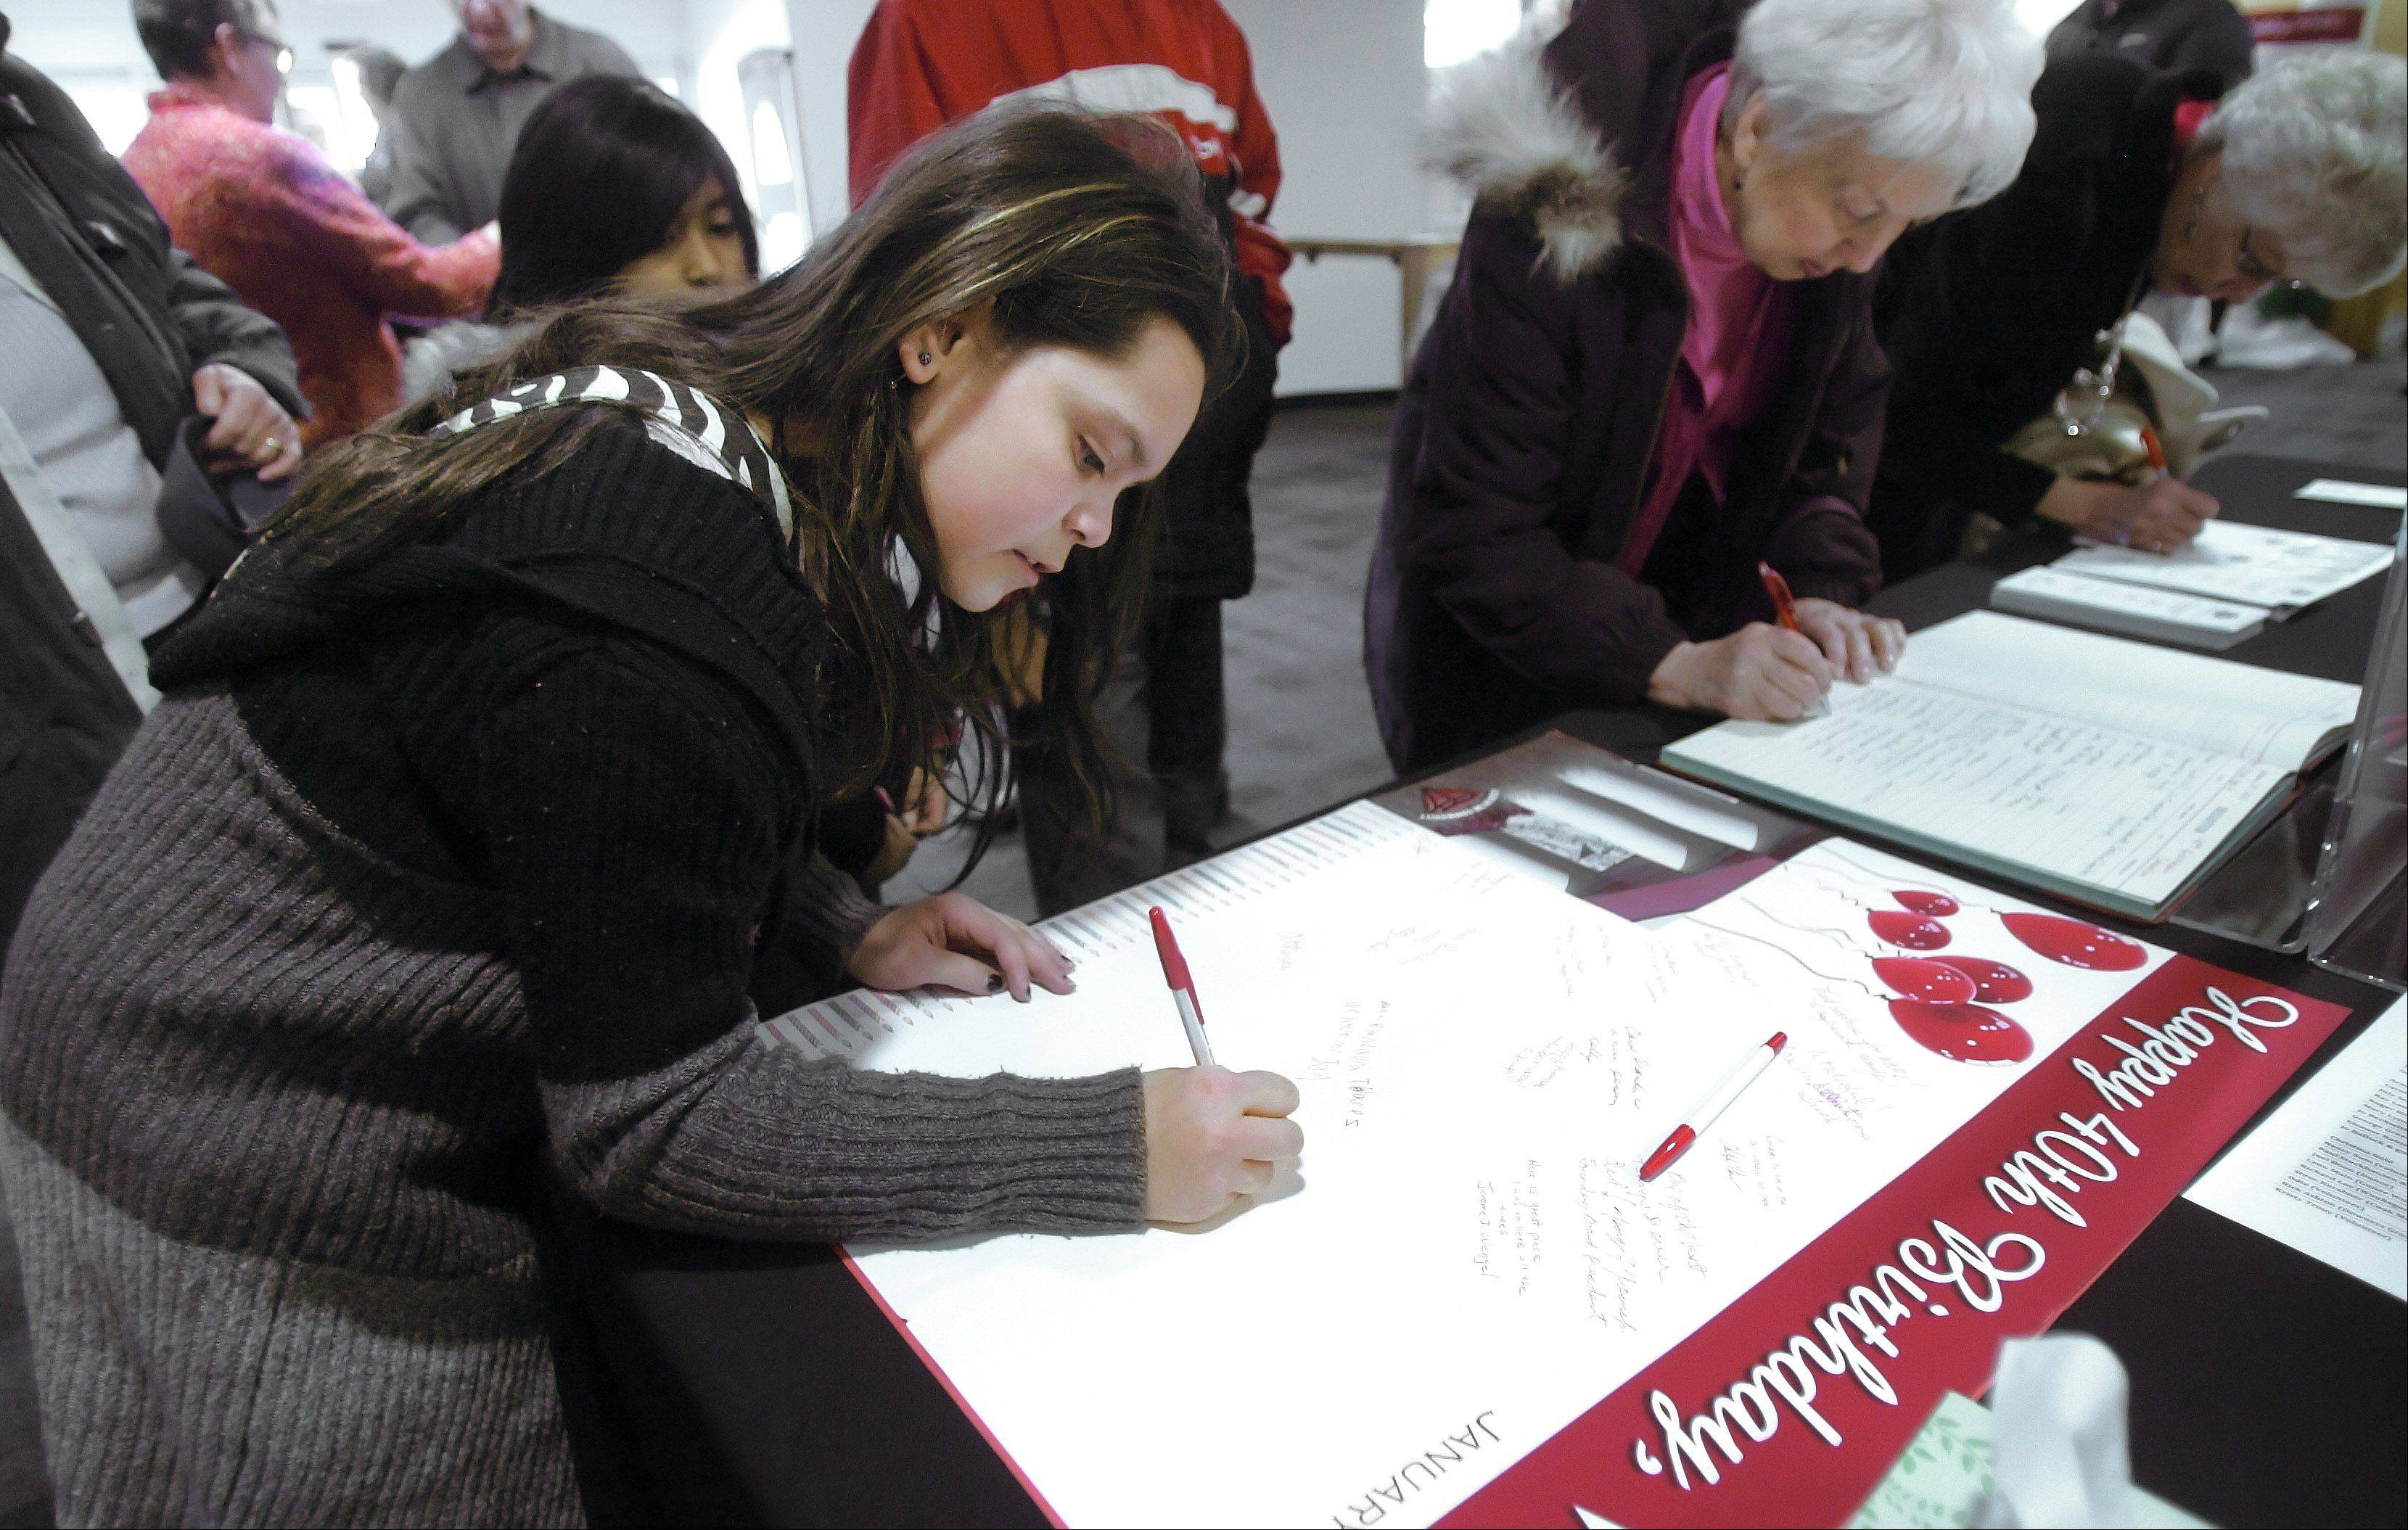 Angelina Macias, 11, of Park City, signs a card during the Warren-Newport Public Library's 40th anniversary celebration Sunday in Gurnee. The special event featured food, games and actives focused on the anniversary.